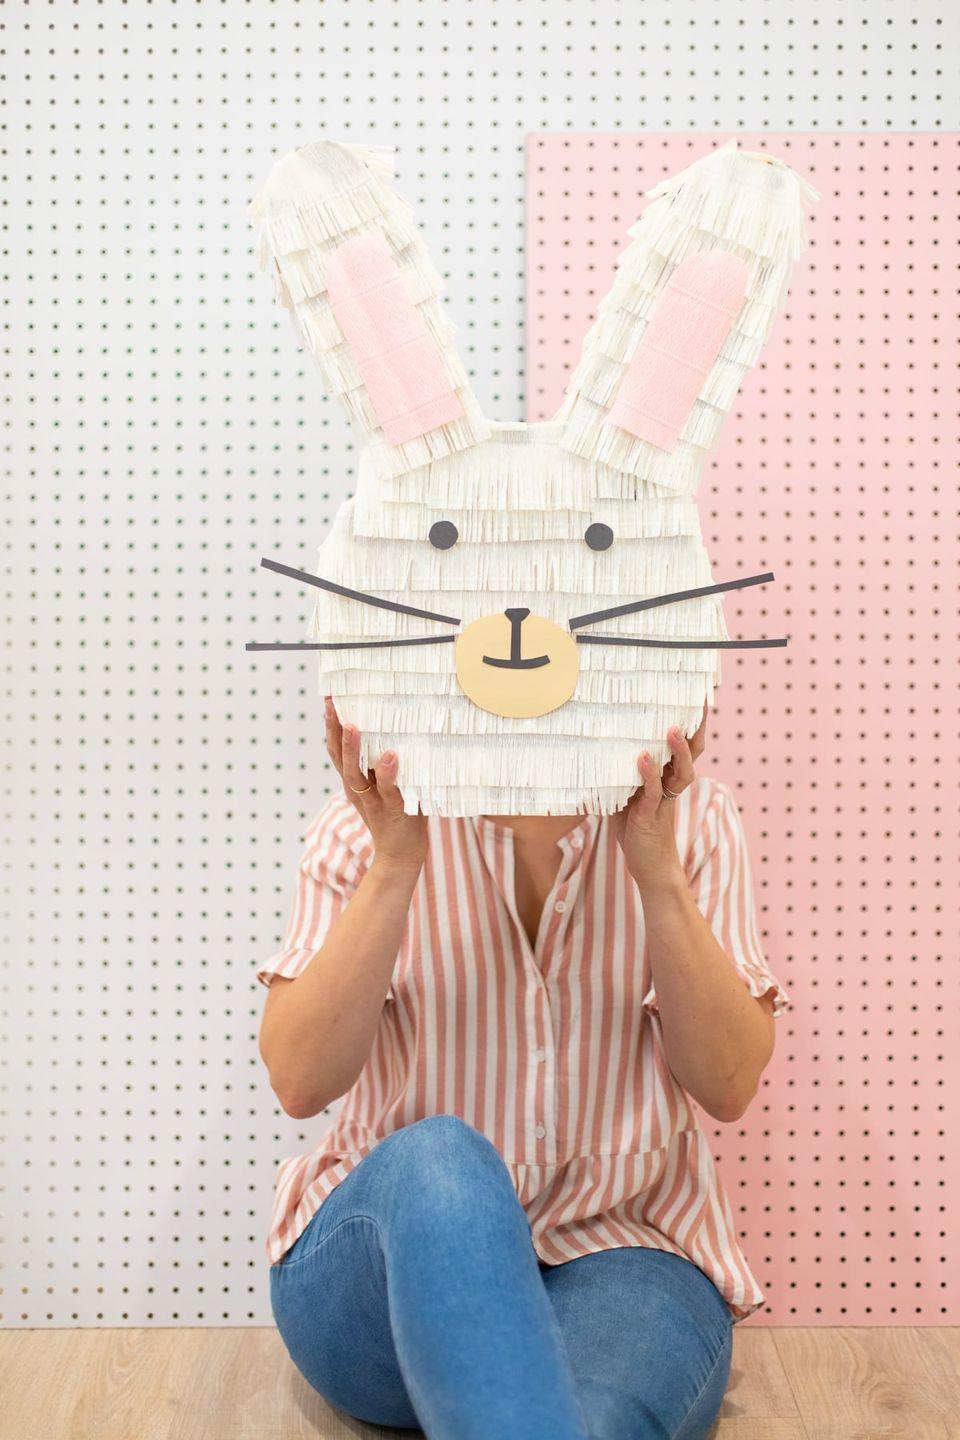 """<p>With a little cardboard and a little creativity, you can make an adorable bunny piñata that will be the life of the party – especially if you've got kids. Make sure you fill it with some incredible <a href=""""https://www.goodhousekeeping.com/holidays/easter-ideas/g2367/easter-candies/"""" rel=""""nofollow noopener"""" target=""""_blank"""" data-ylk=""""slk:Easter candies"""" class=""""link rapid-noclick-resp"""">Easter candies</a>. </p><p><em><a href=""""https://lovelyindeed.com/how-to-make-a-bunny-pinata/"""" rel=""""nofollow noopener"""" target=""""_blank"""" data-ylk=""""slk:Get the tutorial at Lovely Indeed »"""" class=""""link rapid-noclick-resp"""">Get the tutorial at Lovely Indeed »</a> </em></p><p><strong>RELATED:</strong> <a href=""""https://www.goodhousekeeping.com/holidays/easter-ideas/g4154/easter-games/"""" rel=""""nofollow noopener"""" target=""""_blank"""" data-ylk=""""slk:20 Fun Easter Games for Kids to Play All Day"""" class=""""link rapid-noclick-resp"""">20 Fun Easter Games for Kids to Play All Day</a></p>"""